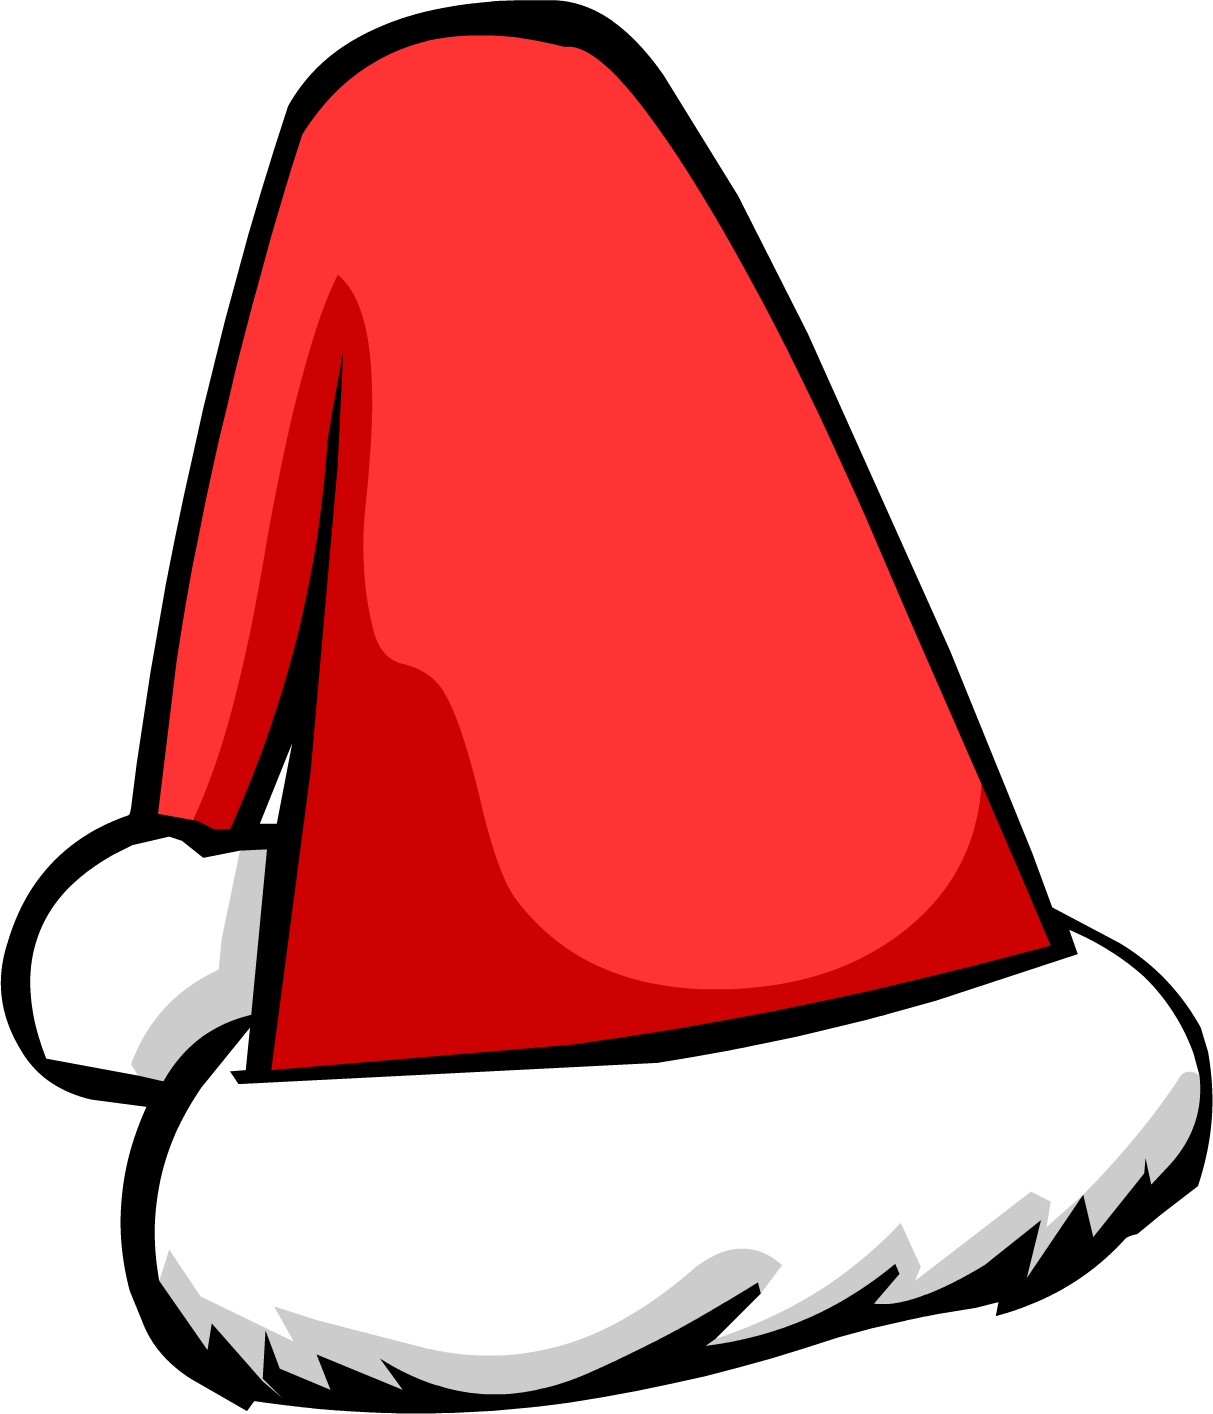 Christmas hats clipart graphic black and white download Santa Hat | Club Penguin Wiki | FANDOM powered by Wikia graphic black and white download